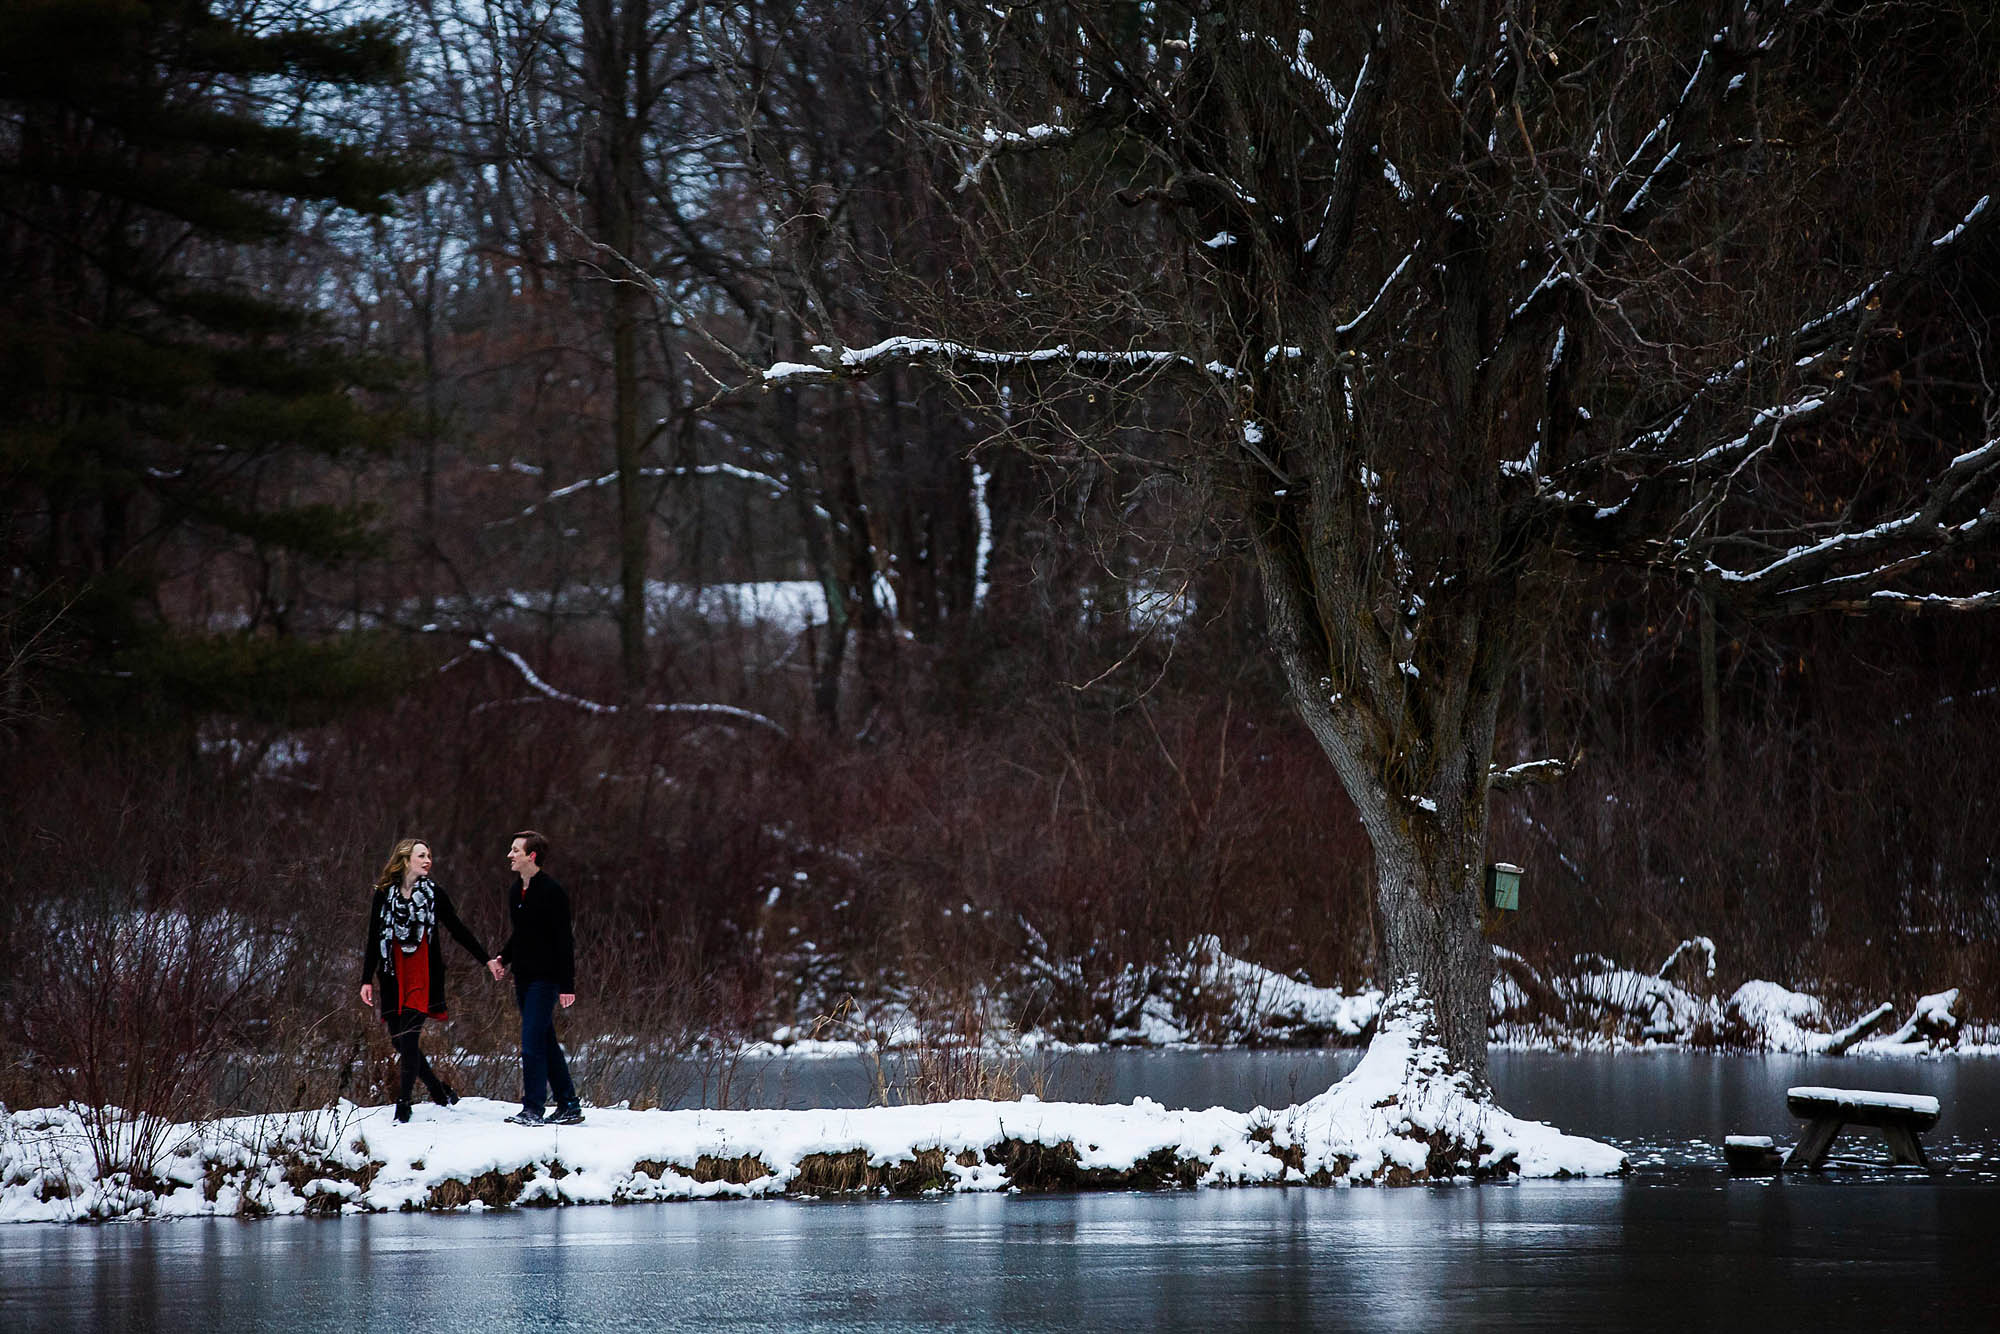 A picture of an engaged couple walking hand in hand outside on a winter day with a lake in front of them and snowy bare tree branches above them at Boettler Park in Ohio.